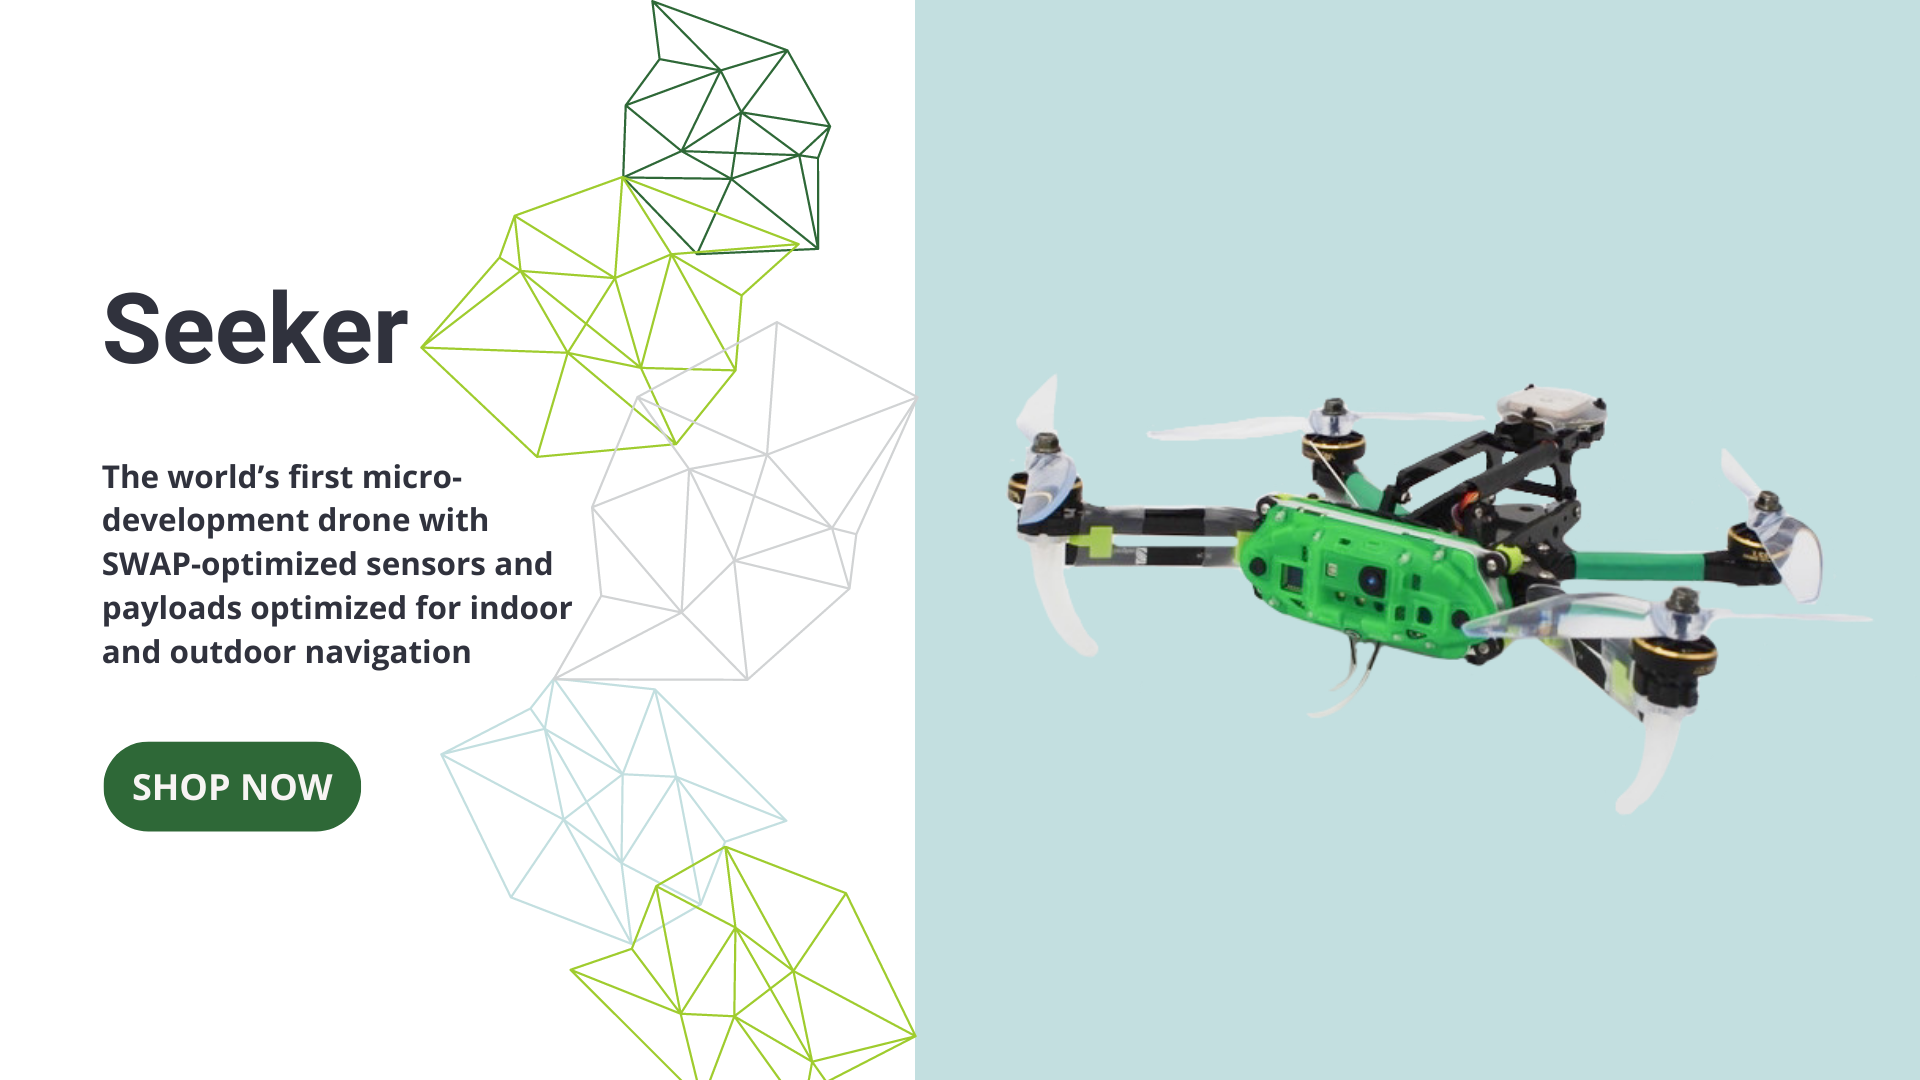 Seeker The world's first micro-development drone with SWAP-optimized sensors and payloads optimized for indoor and outdoor navigation